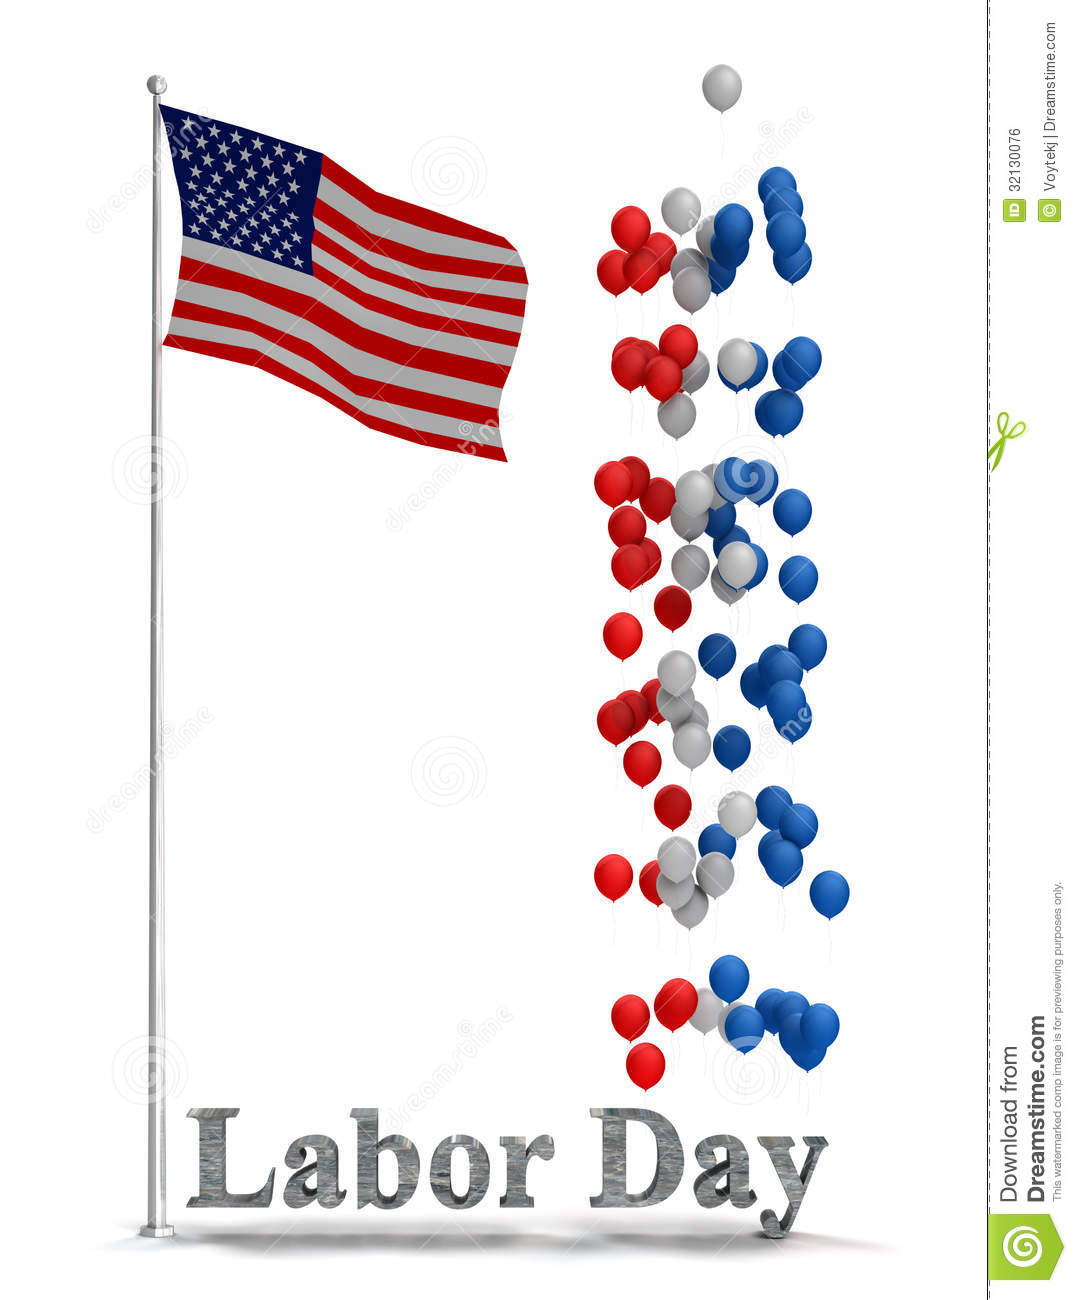 Labor Day Flyer Graphic Stock Illustration. Illustration Of Background    32130076